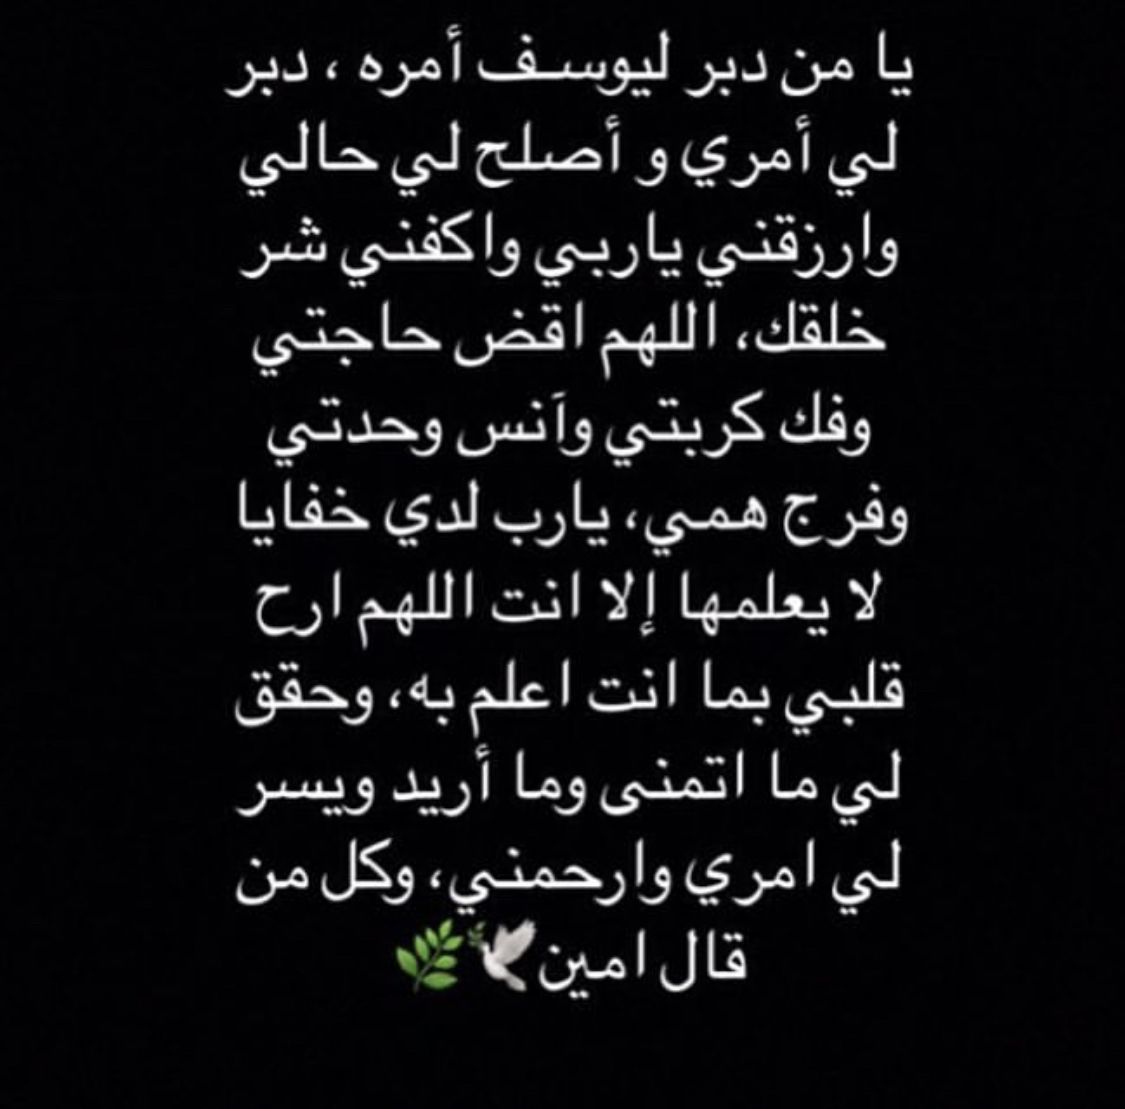 Pin By Ibtissam On ادعية Islamic Pictures Arabic Words Qoutes